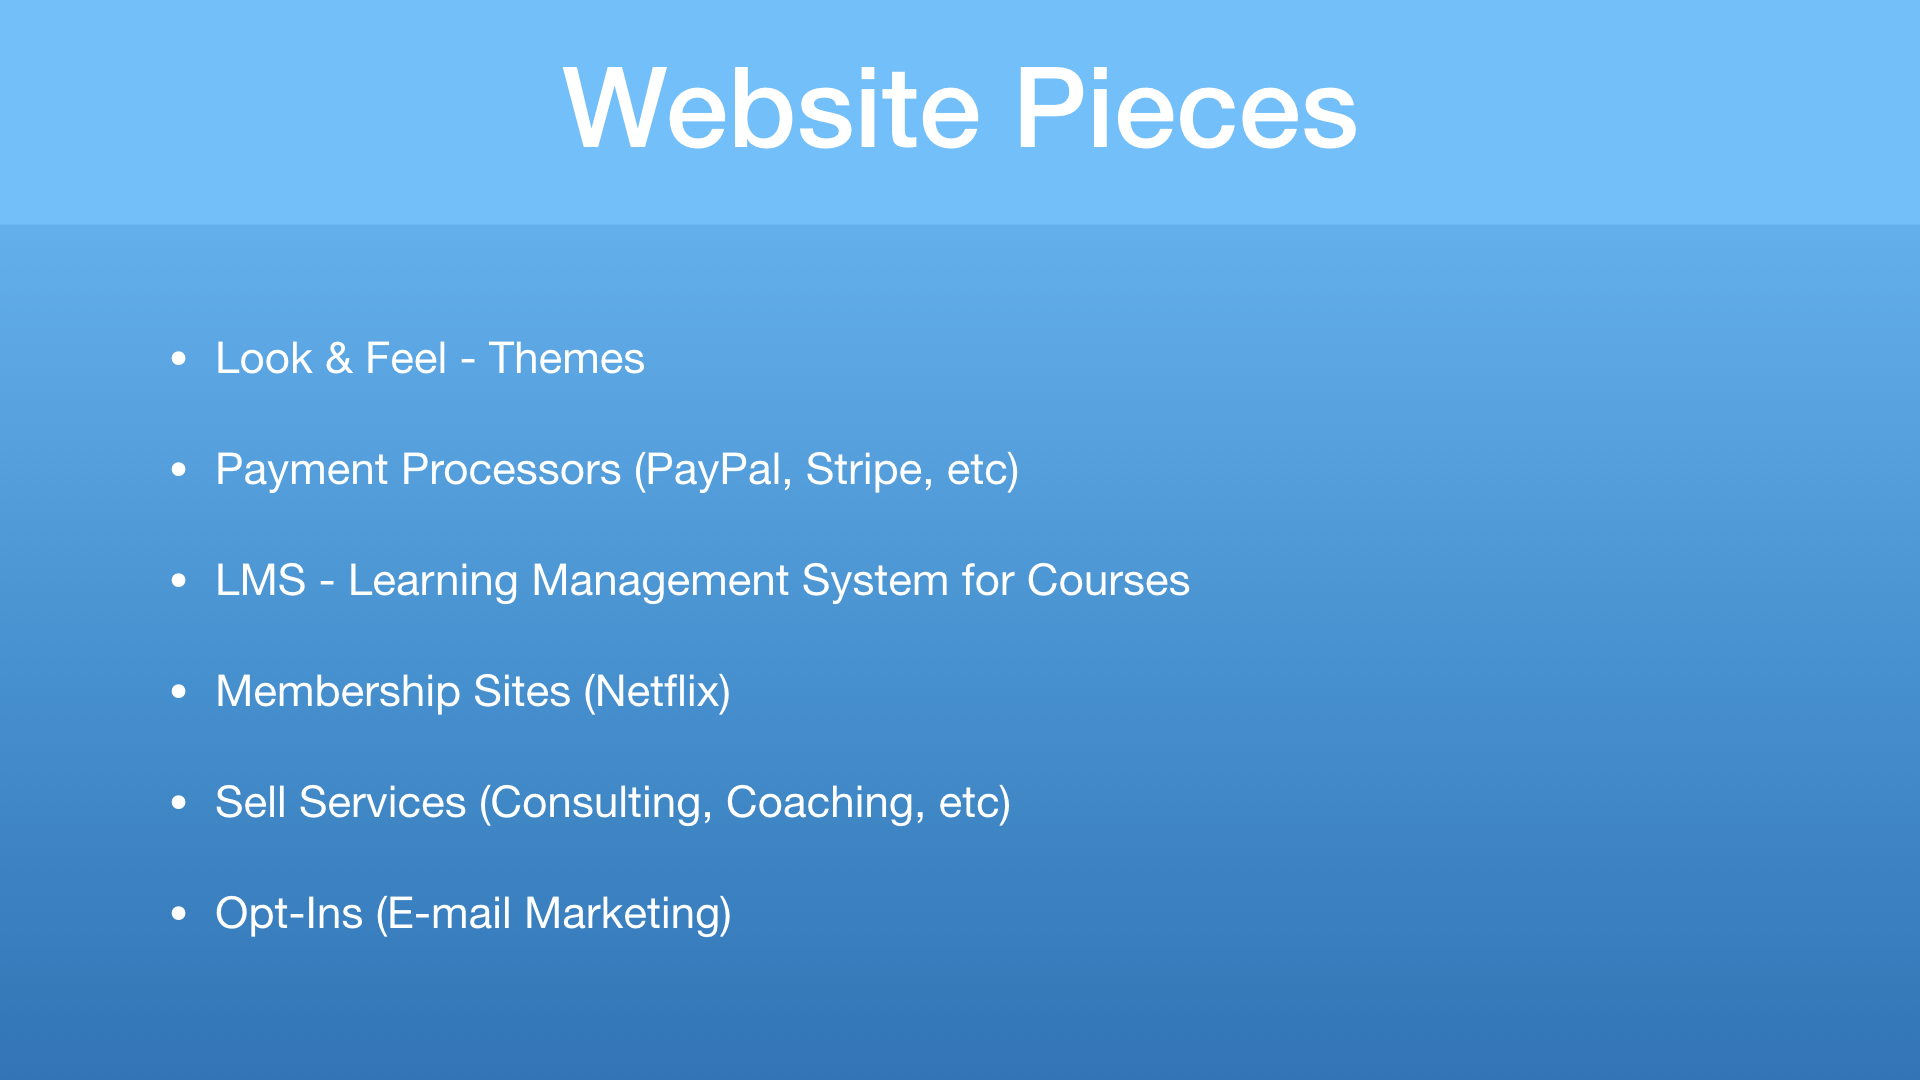 Key Website Pieces for Successful Online Digital Business